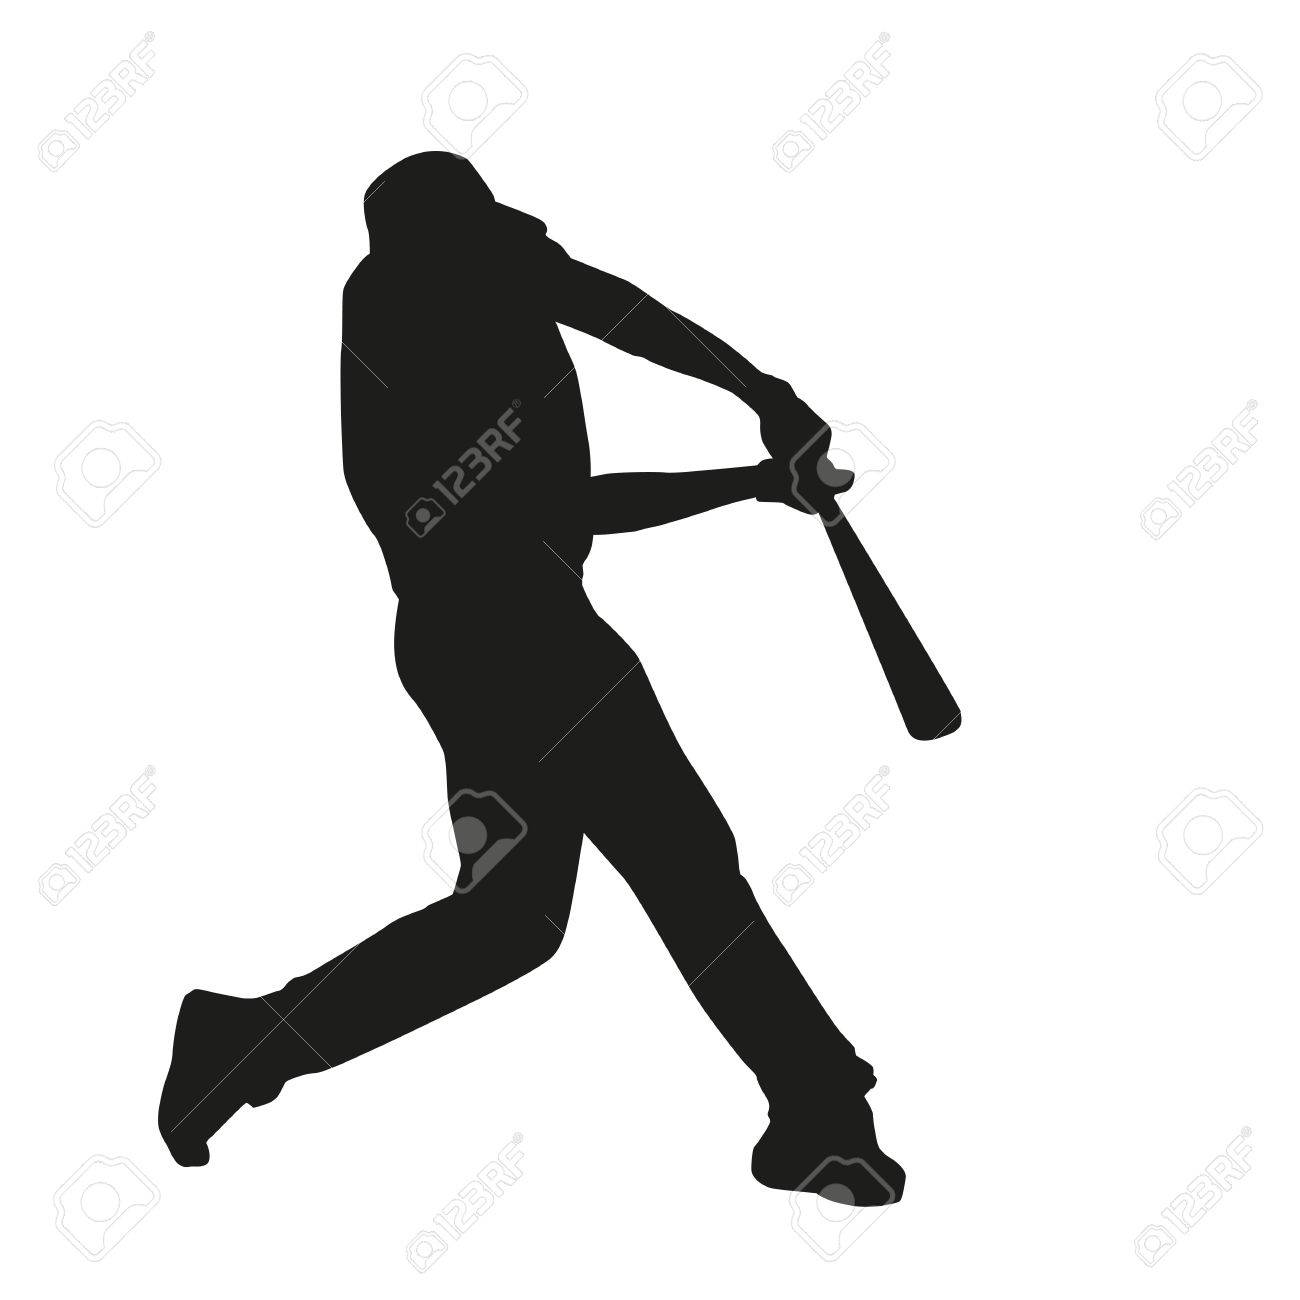 baseball batter hitting ball vector silhouette royalty free rh 123rf com Baseball Player Batter Clip Art Baseball Player Vector